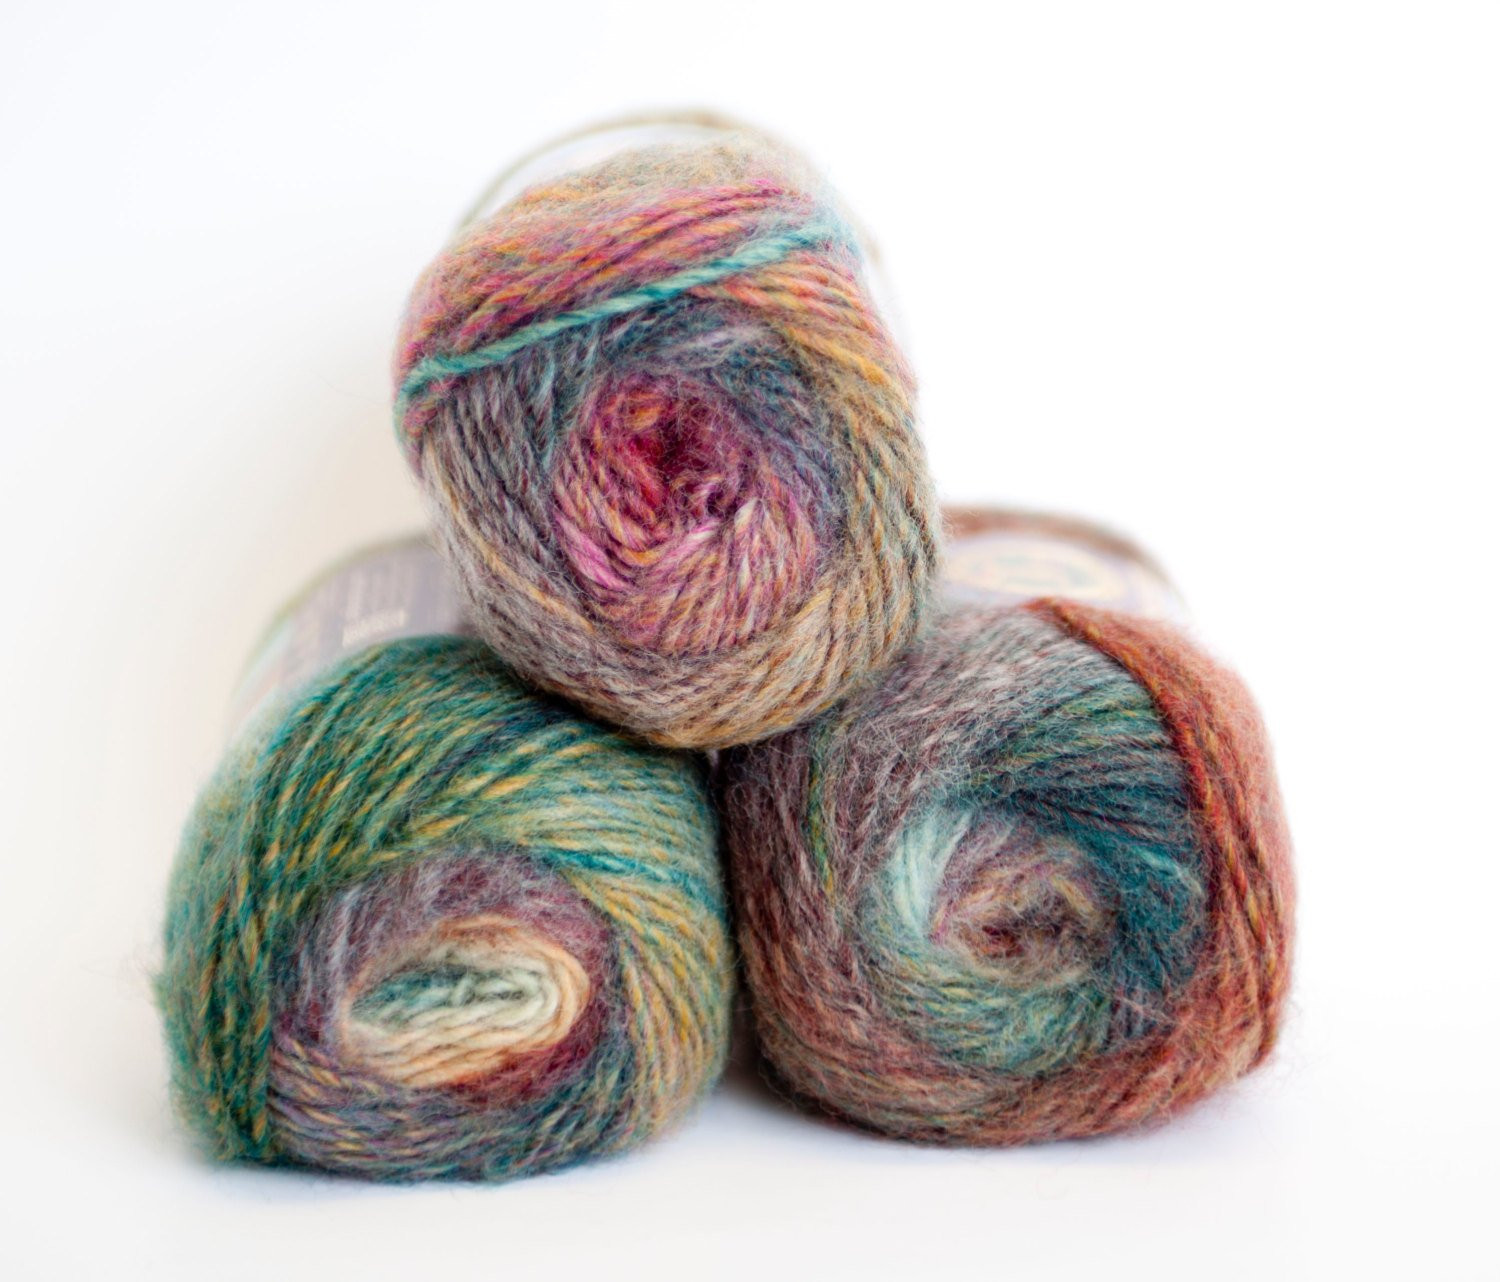 Lion Brand Yarn Awesome Amazing Yarn From Lion Brand Strawberry Fields From Of Delightful 49 Models Lion Brand Yarn